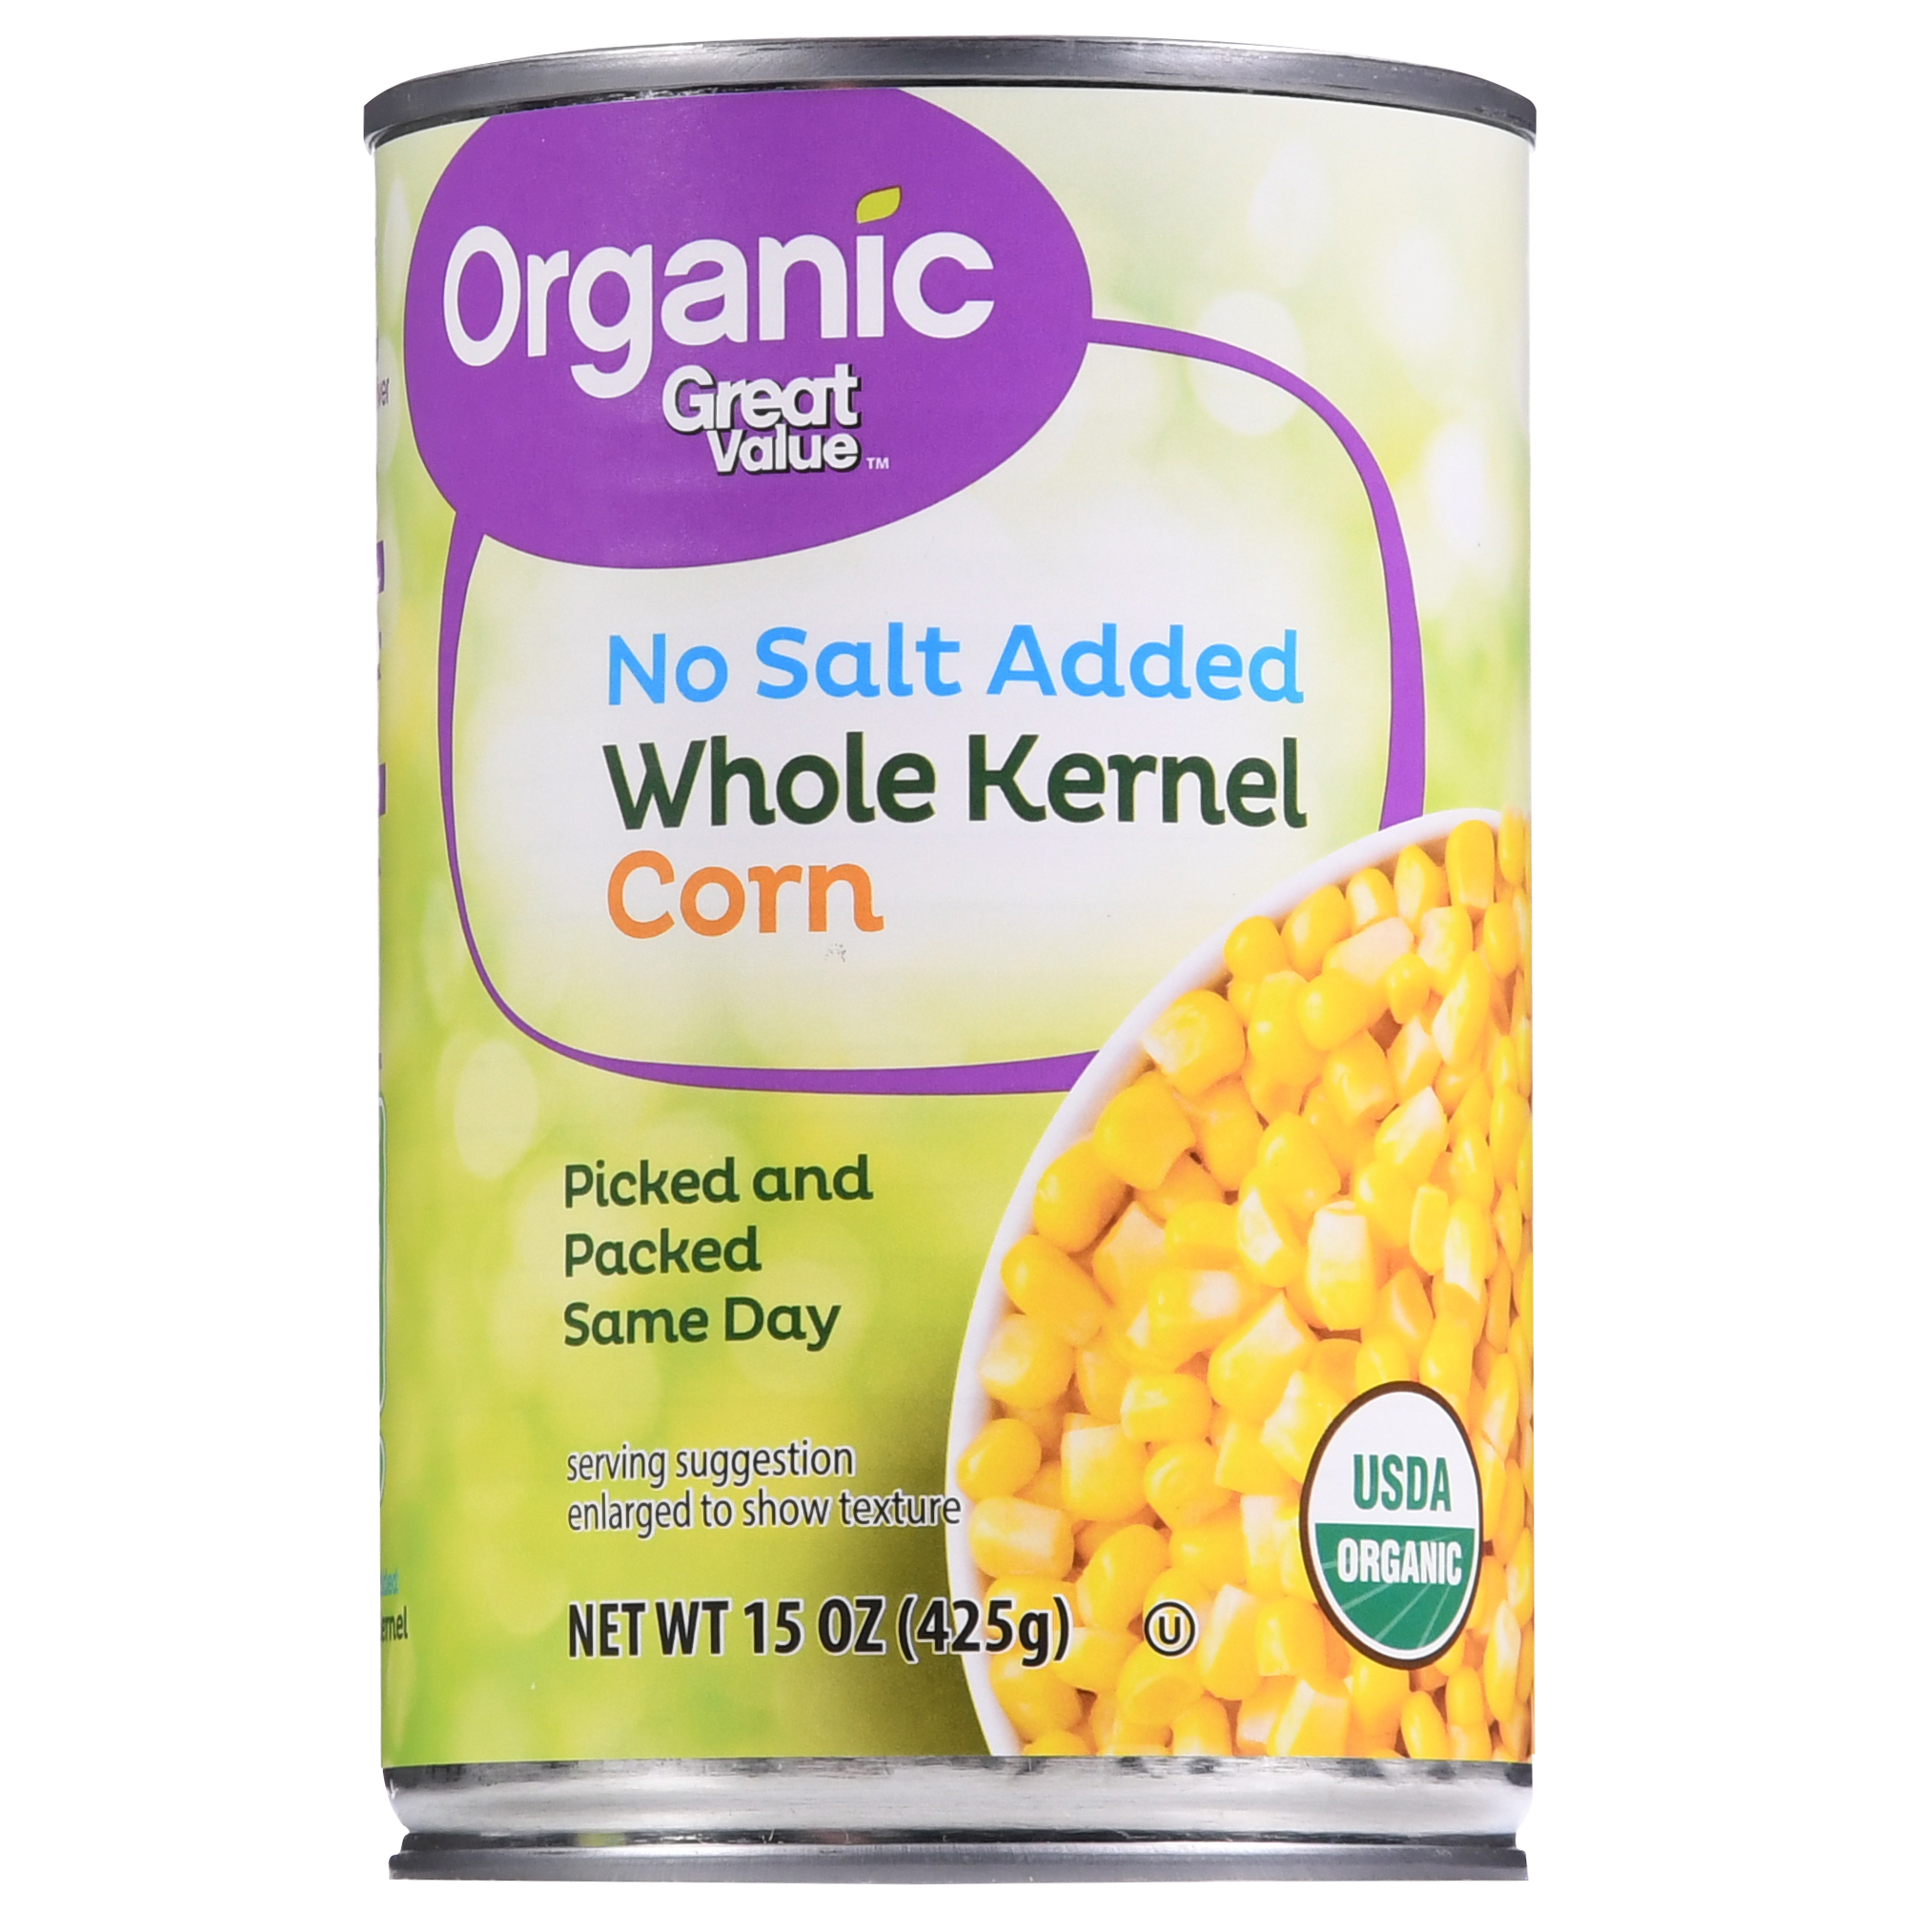 Great Value Organic Whole Kernel Corn, No Salt Added, 15.25 oz